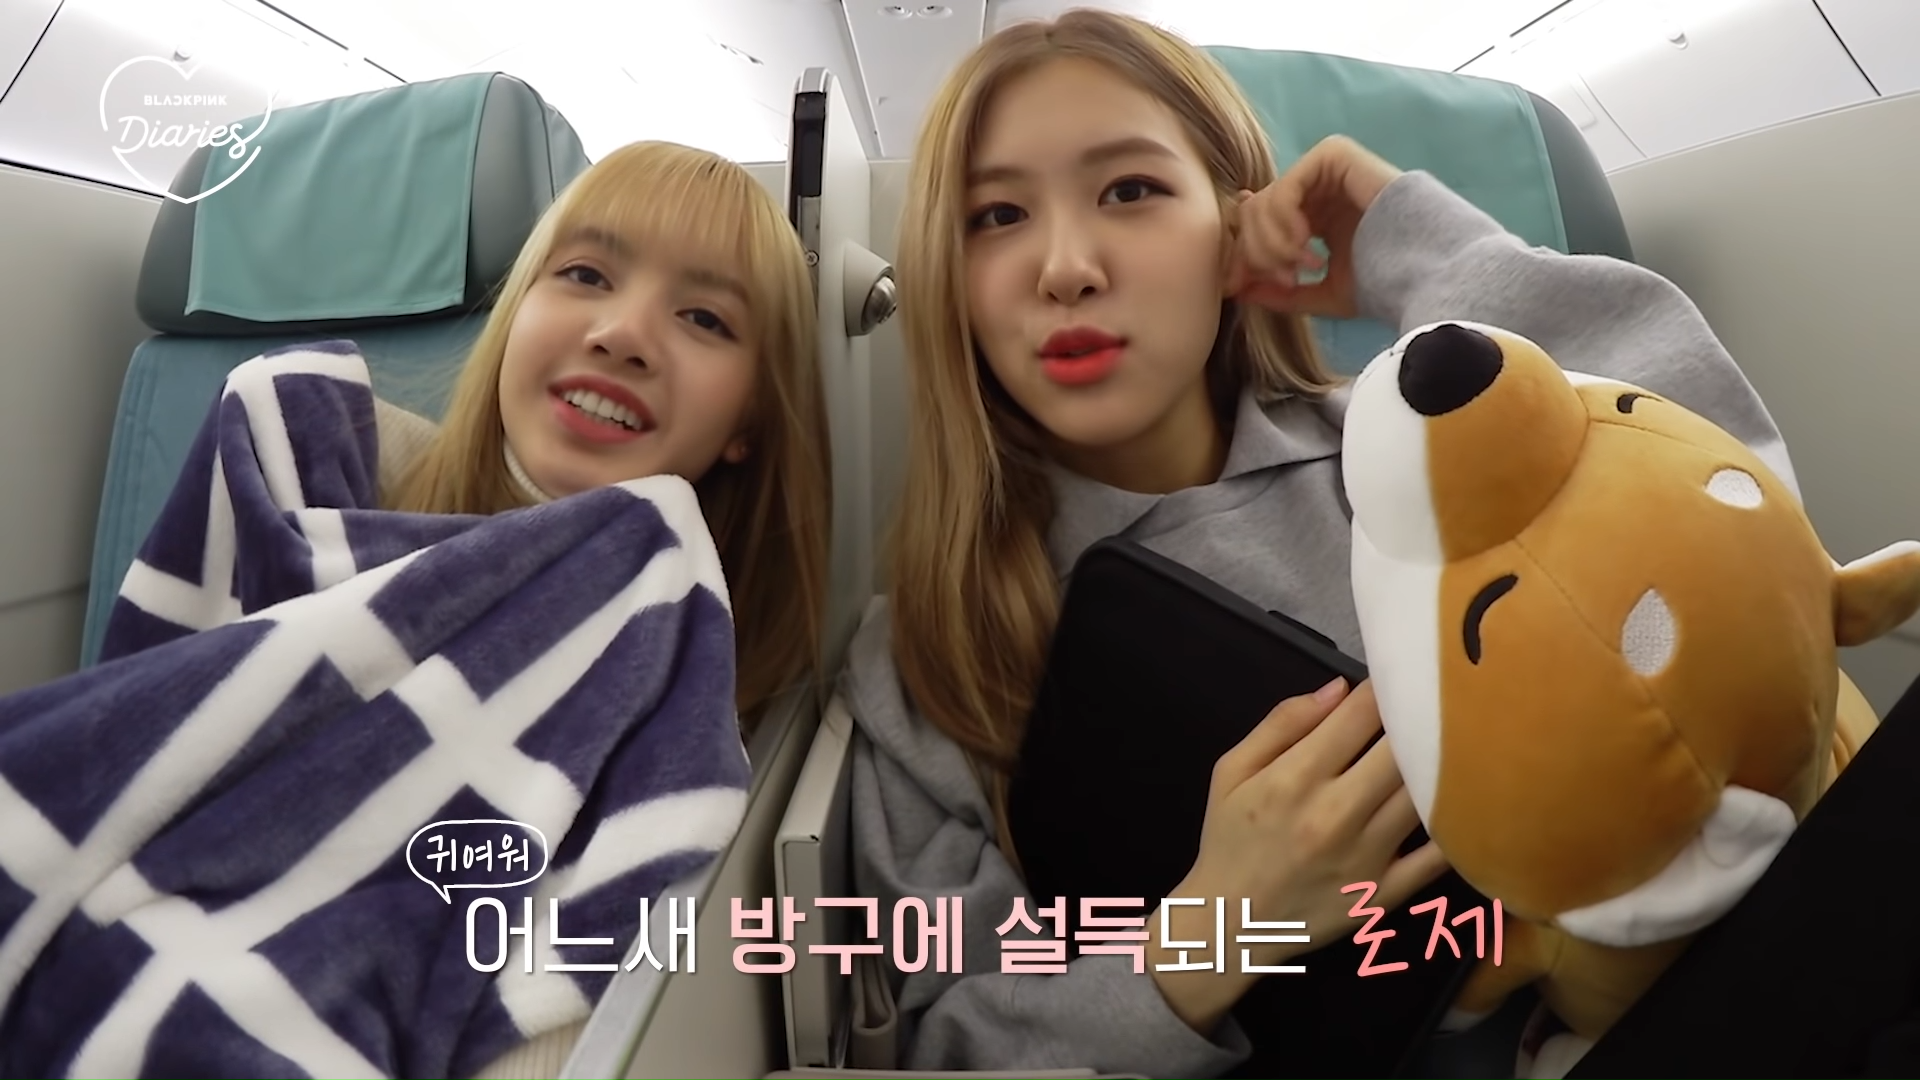 BLACKPINK - 'BLACKPINK DIARIES' EP.6 1-17 screenshot